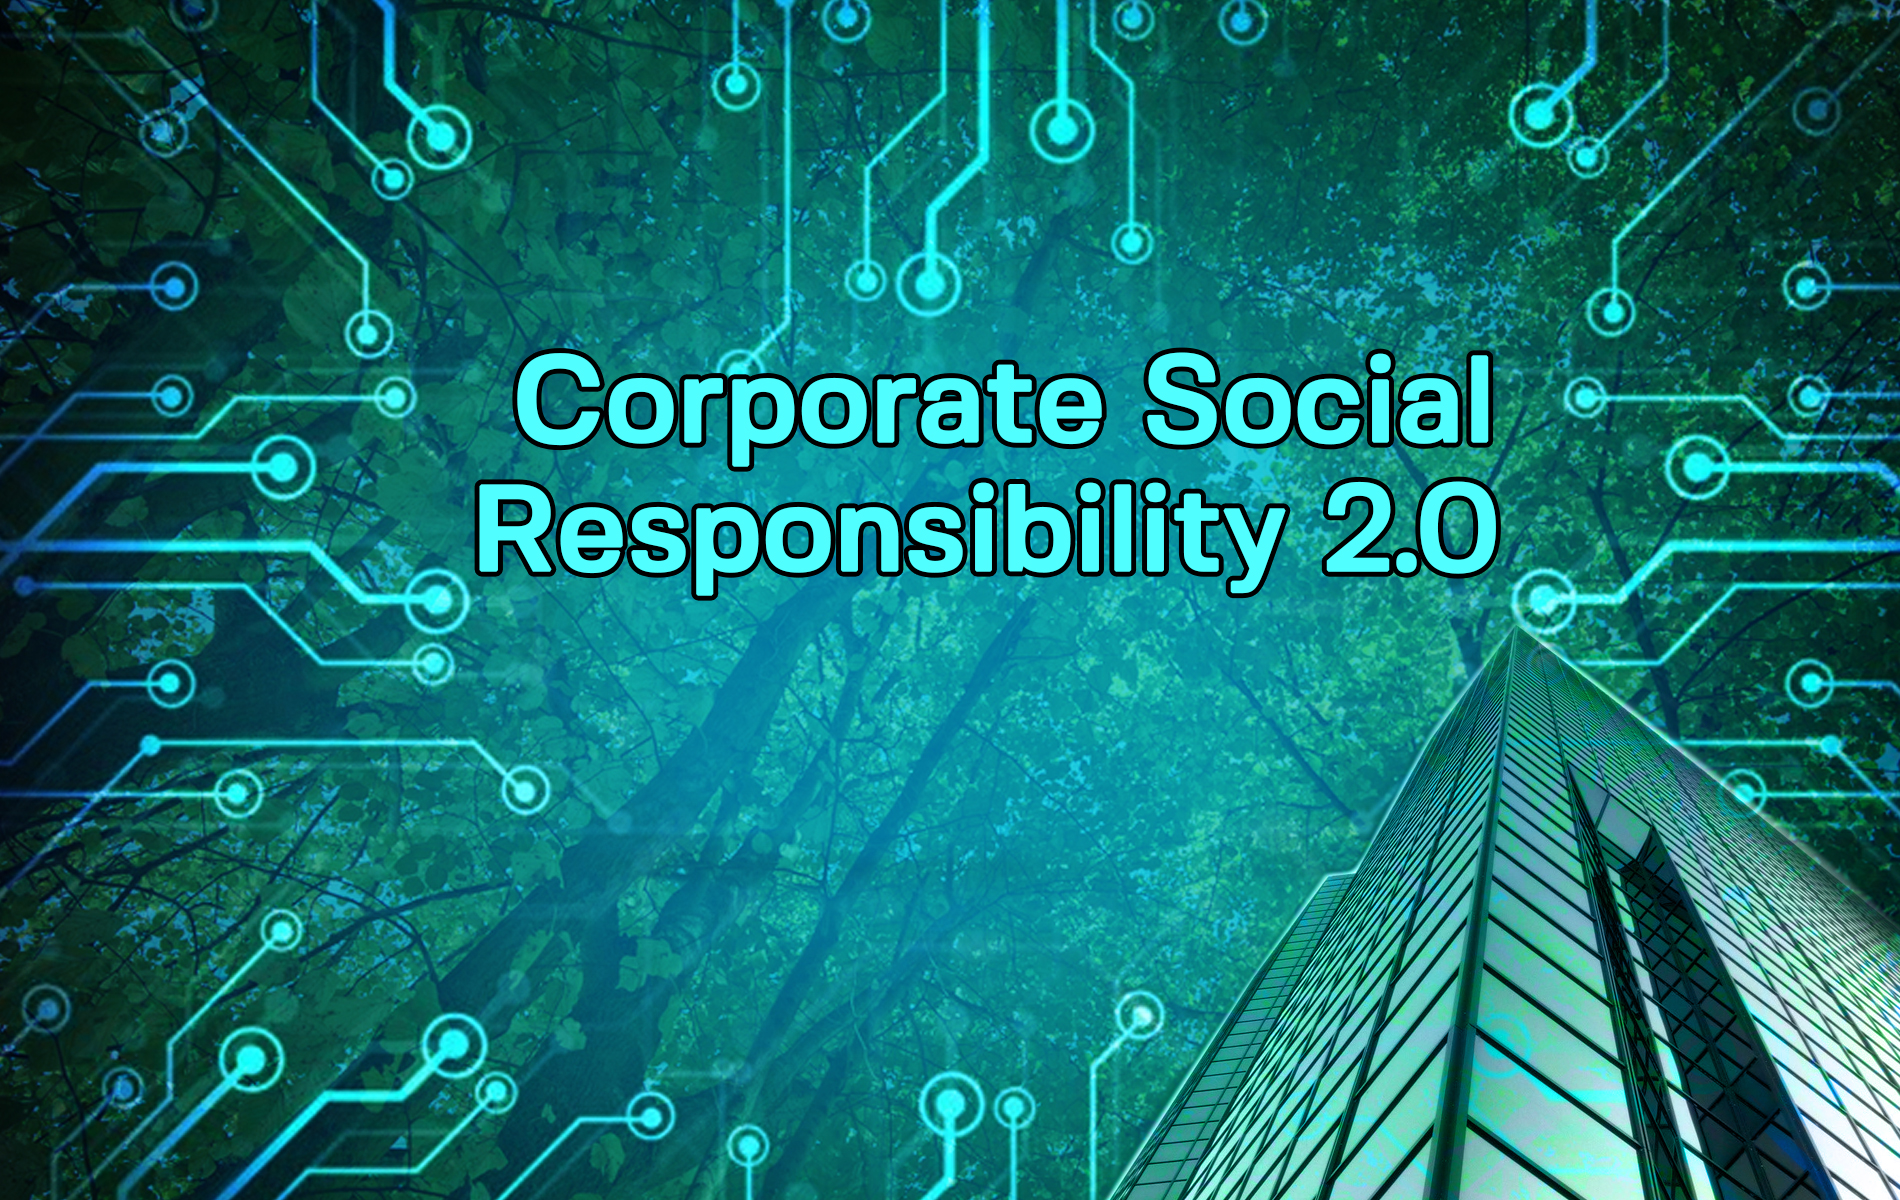 Corporate Social Responsibility 2.0